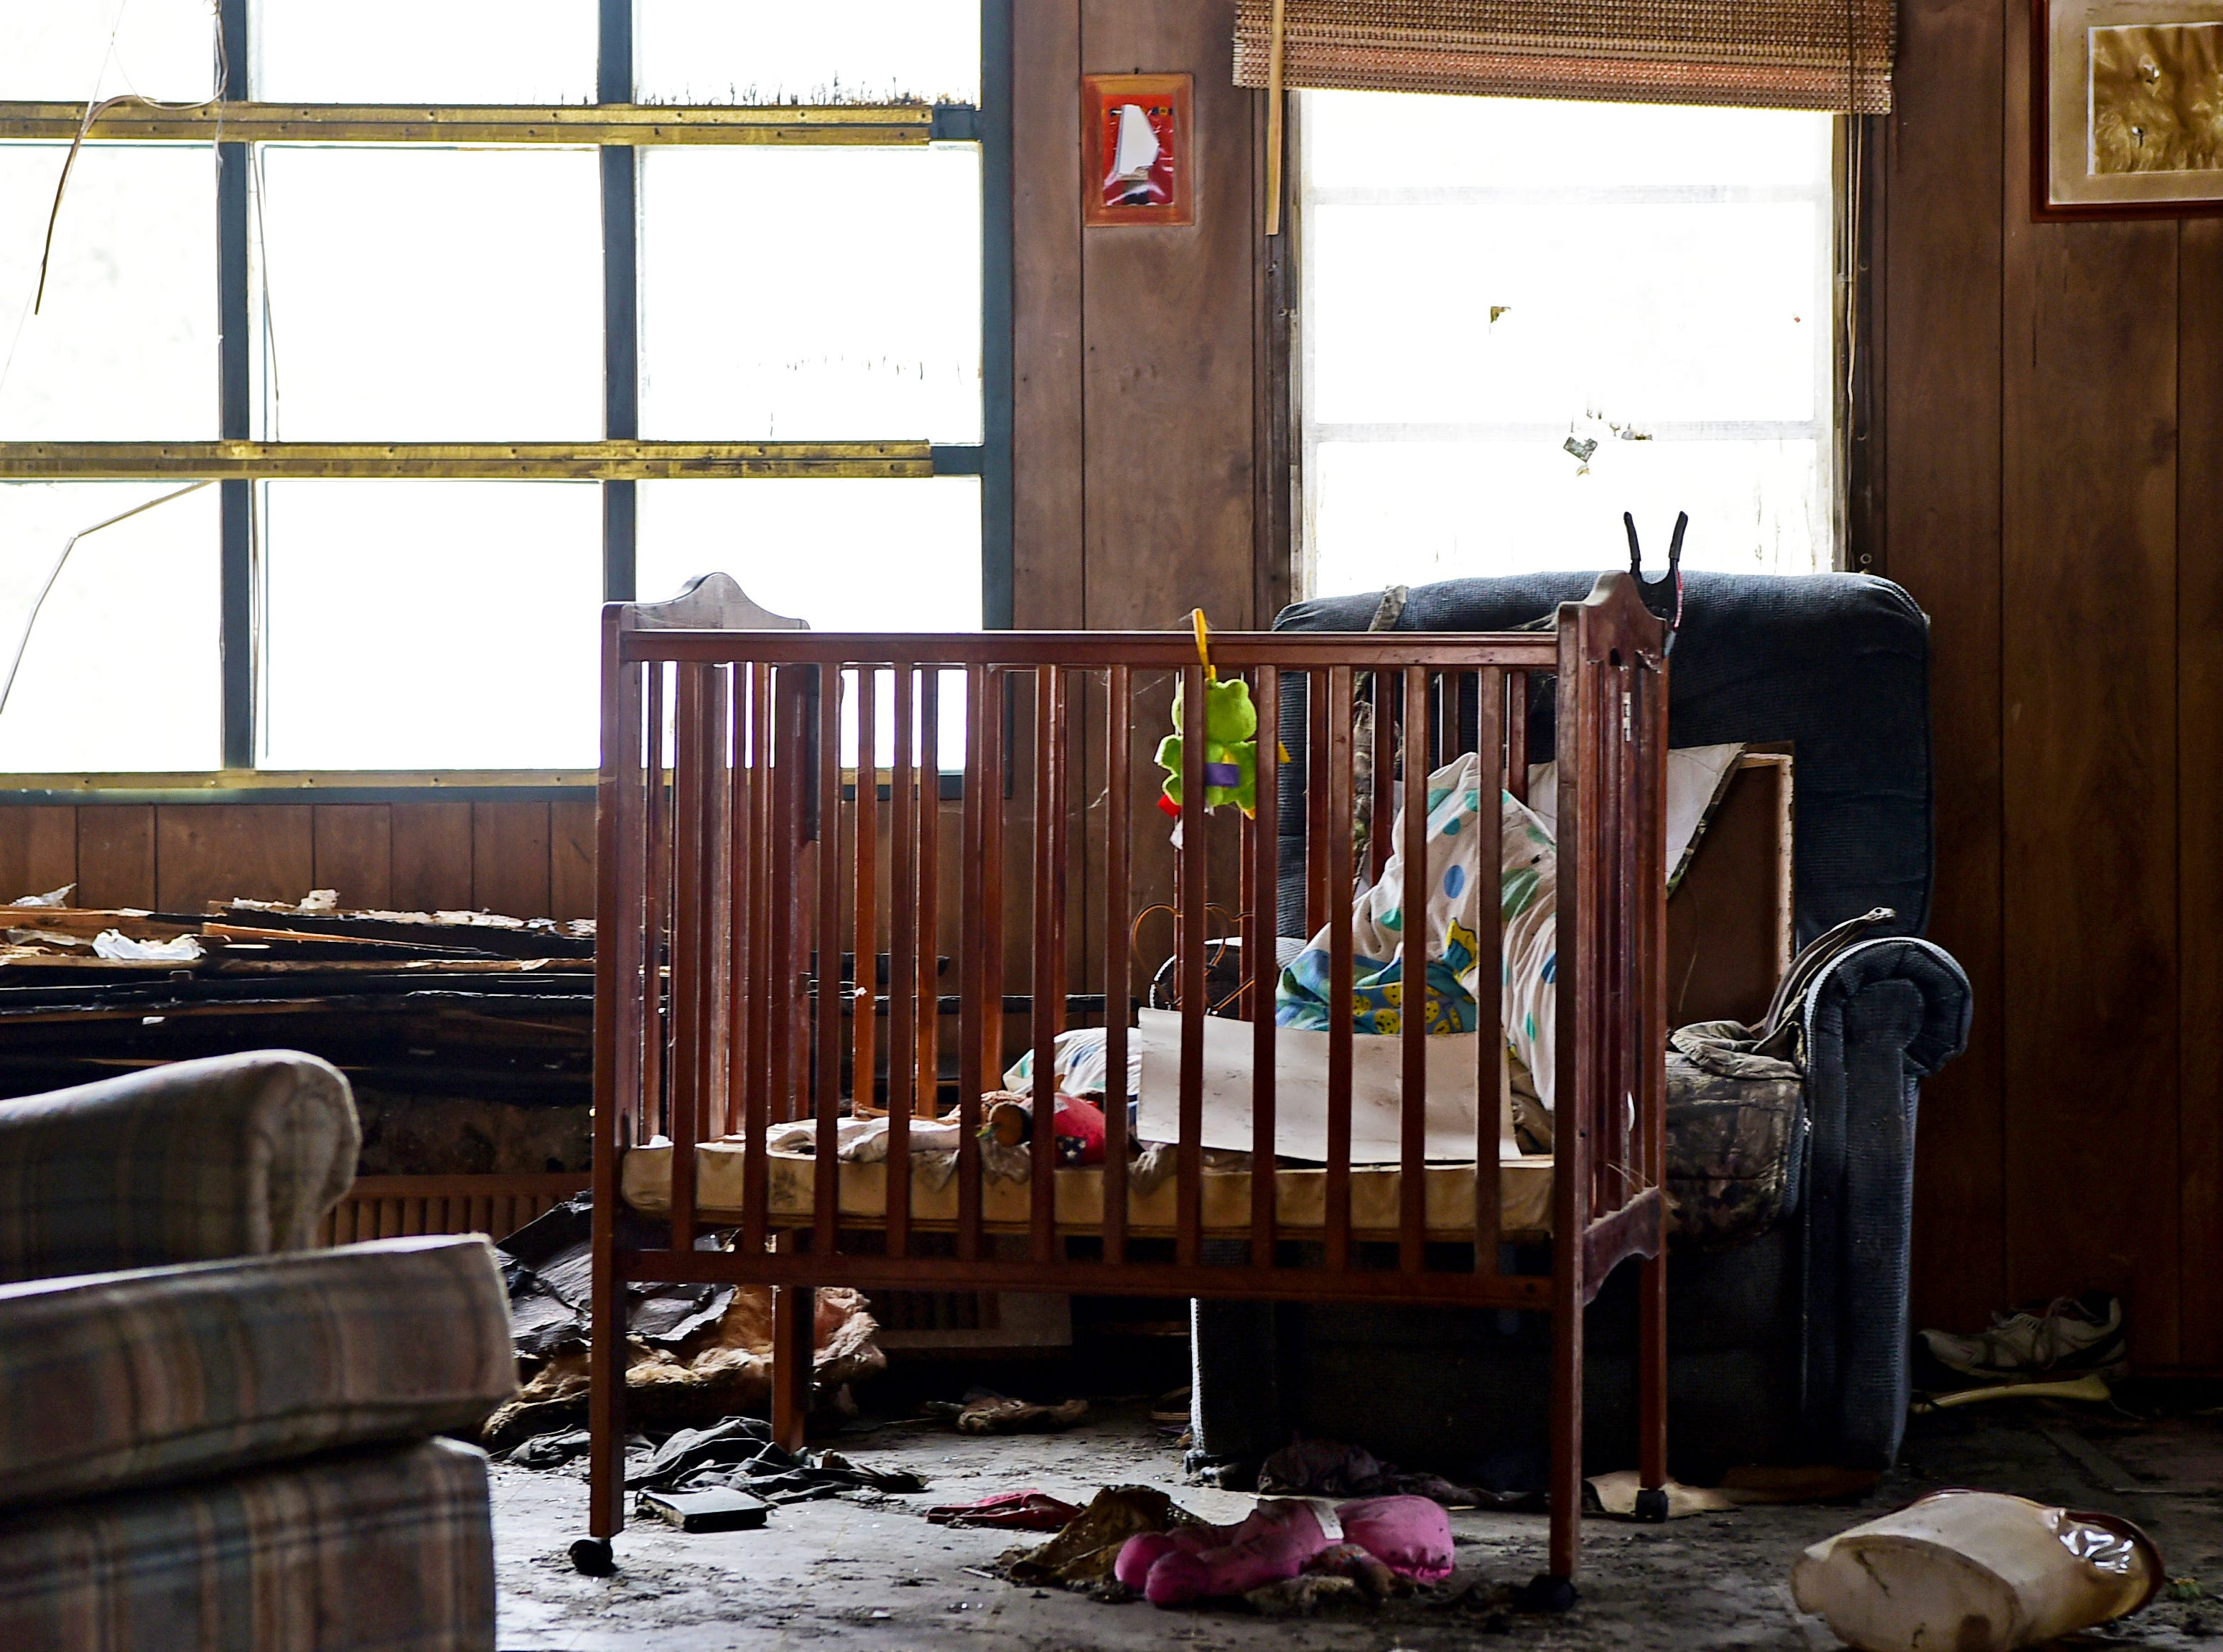 The interior of the former Card family home on Swan Road in Whitney Point still contains toys and other personal belongings. The house was destroyed by fire in 2017.  March 5, 2019.